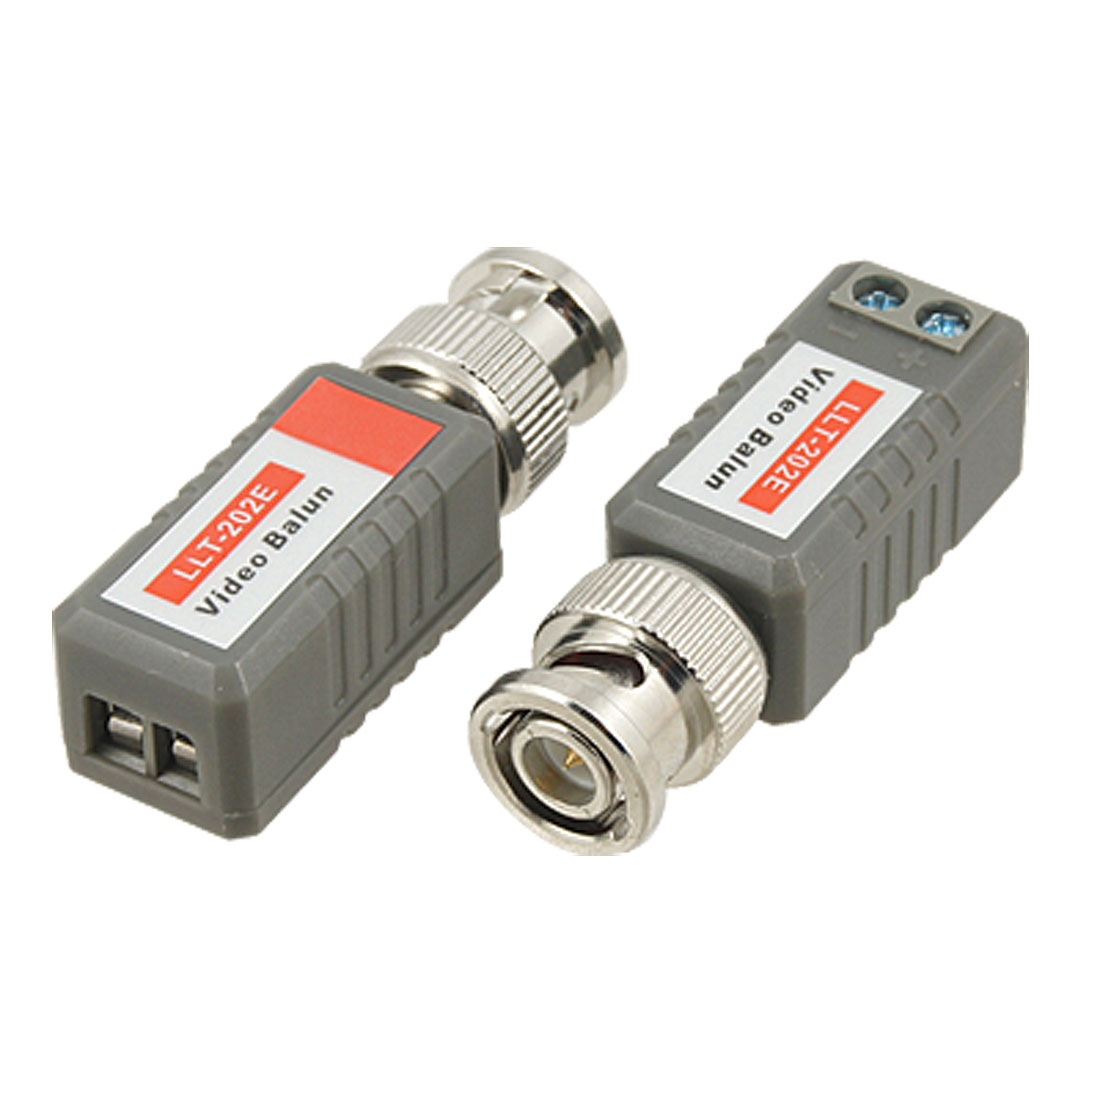 CCTV Camera Passive BNC Connector Cat5 UTP Video Balun Transceiver 2 Pcs